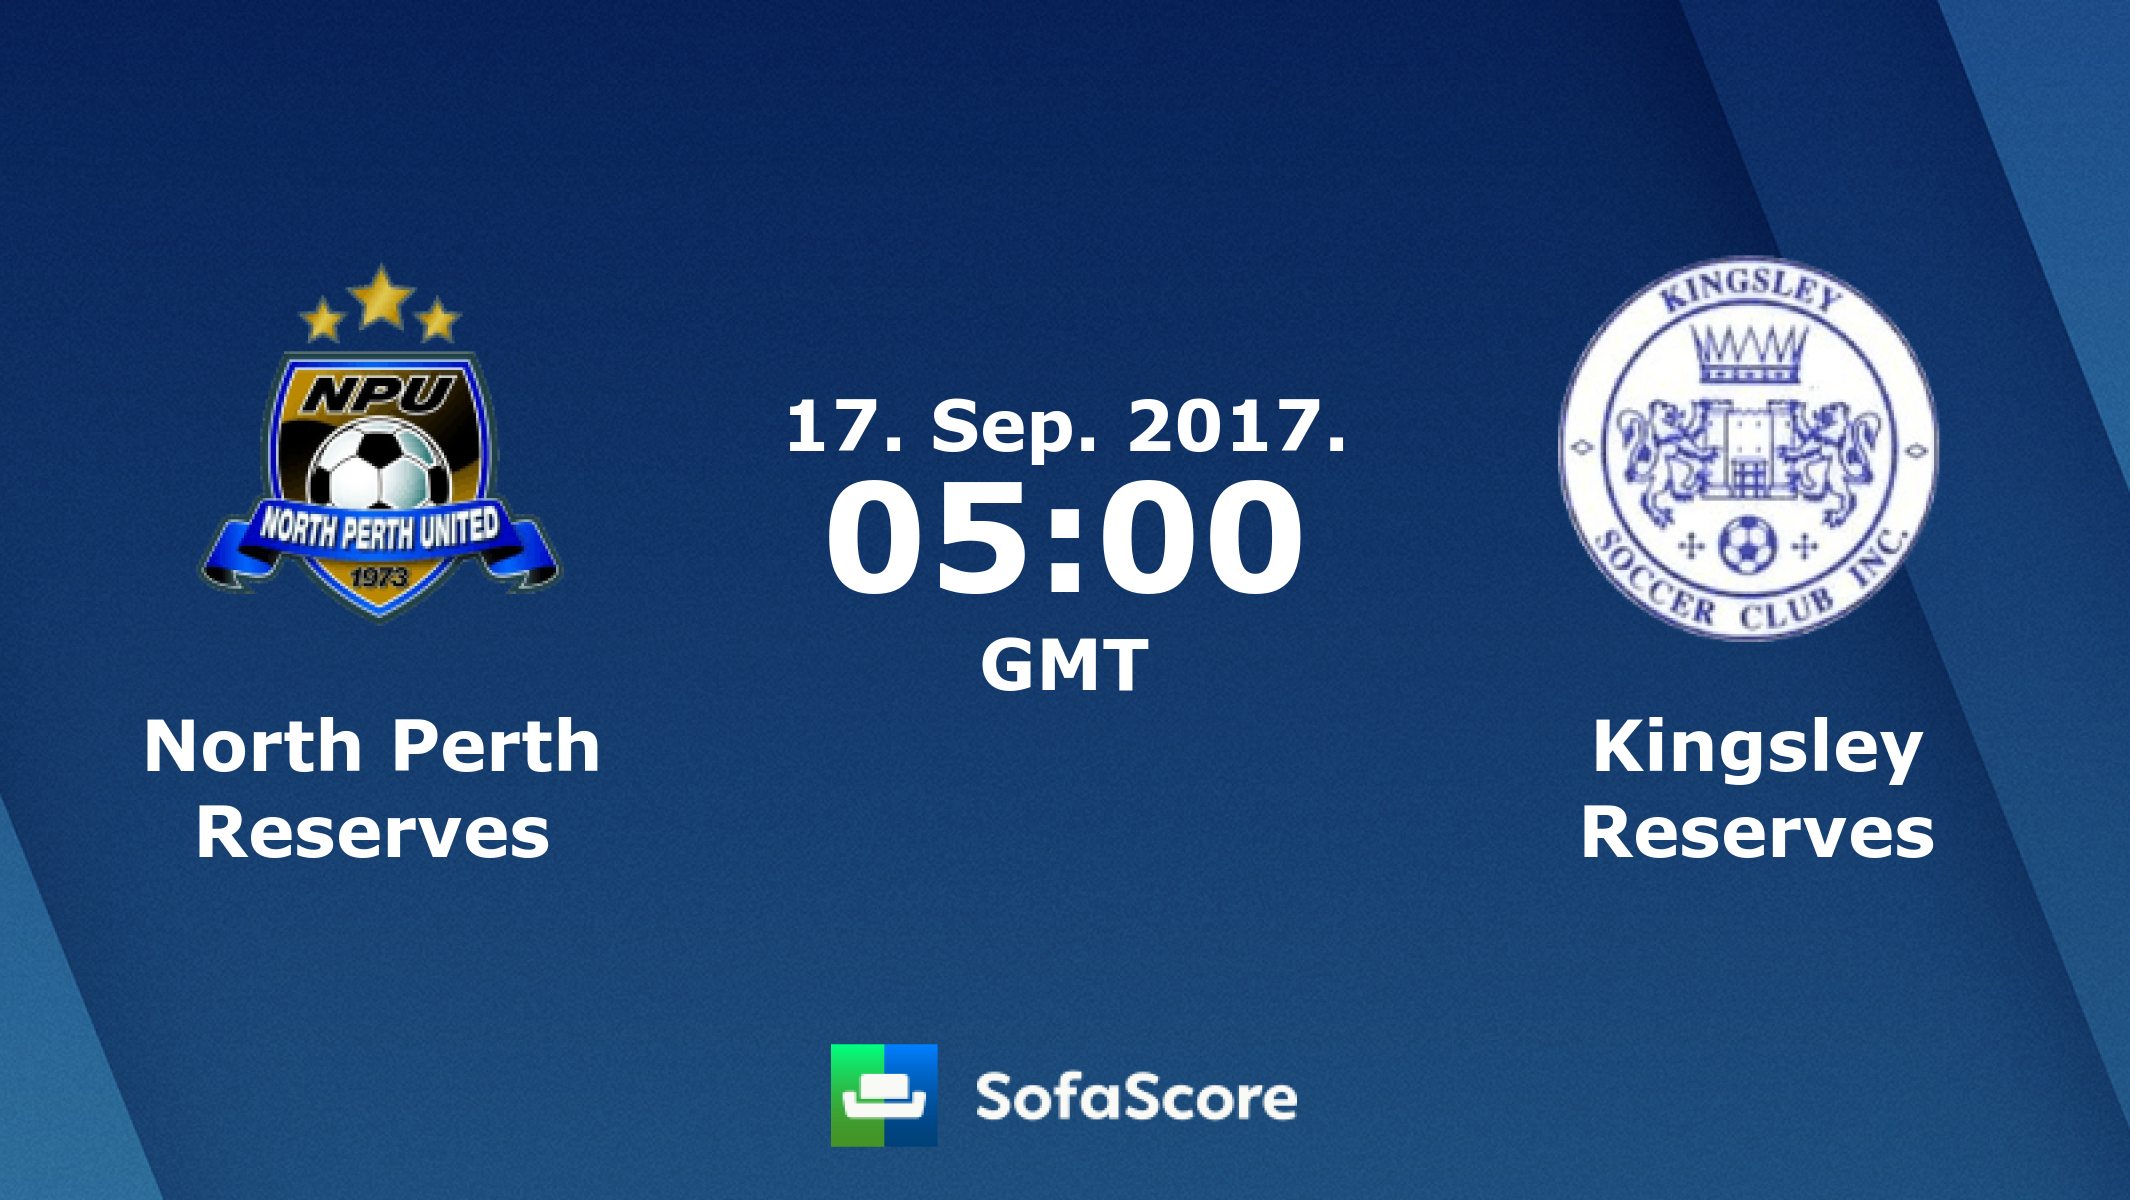 North Perth Reserves Kingsley Reserves live score, video stream and H2H results - SofaScore.com